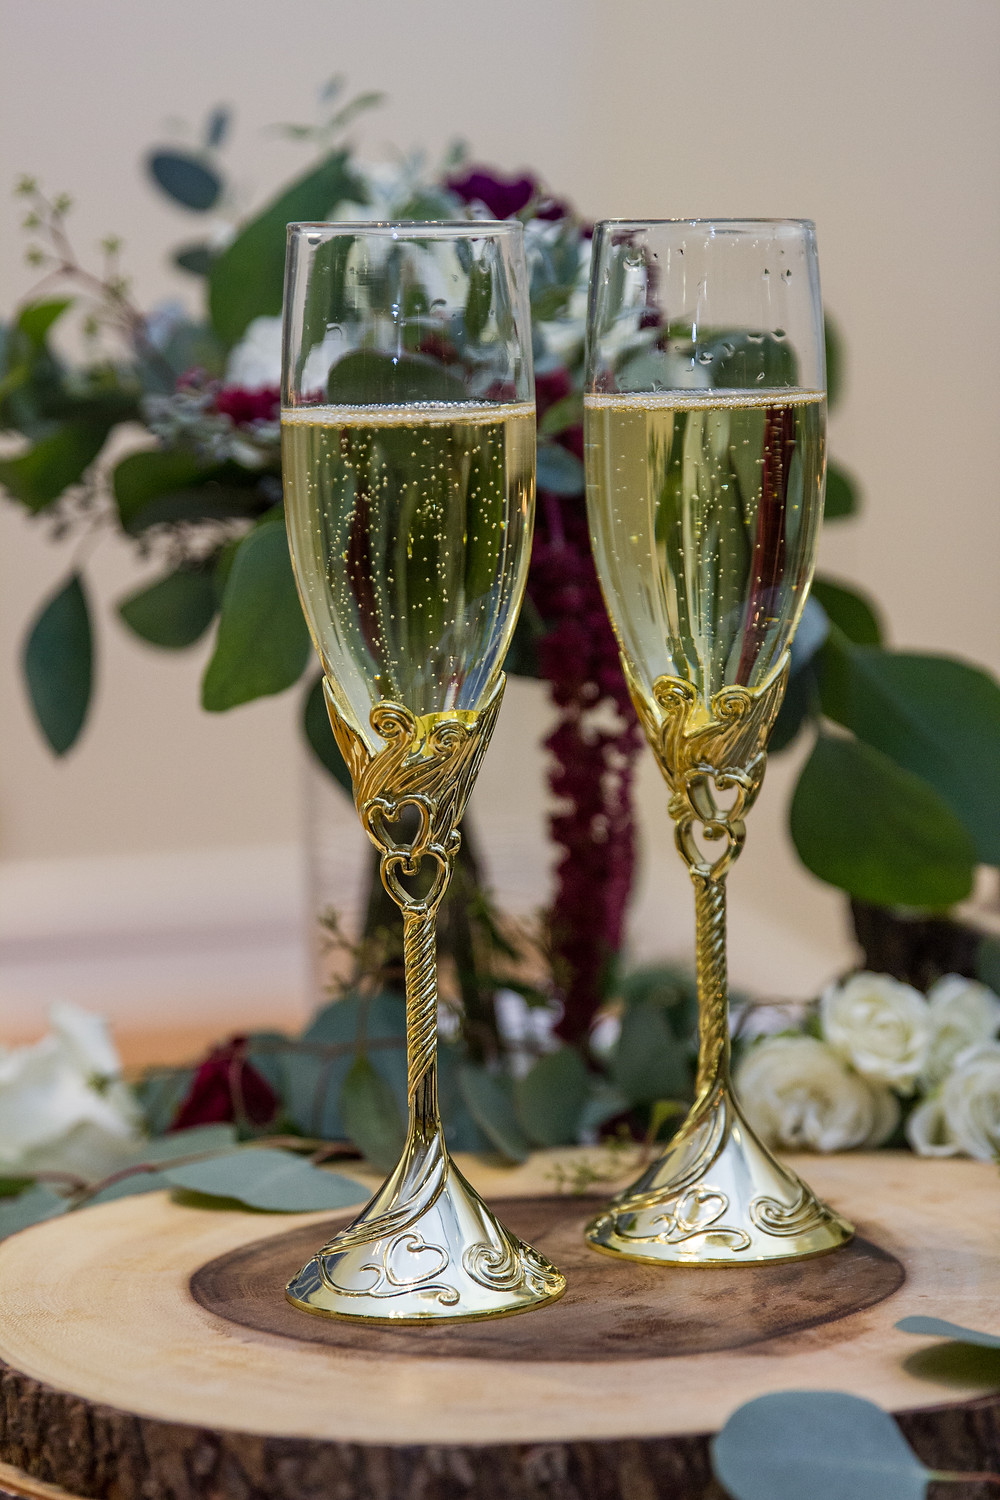 champagne toast, wedding photography, photographer, flutes, champagne, columbia mo, missouri, greenery, burgundy, wood, wedding inspiration